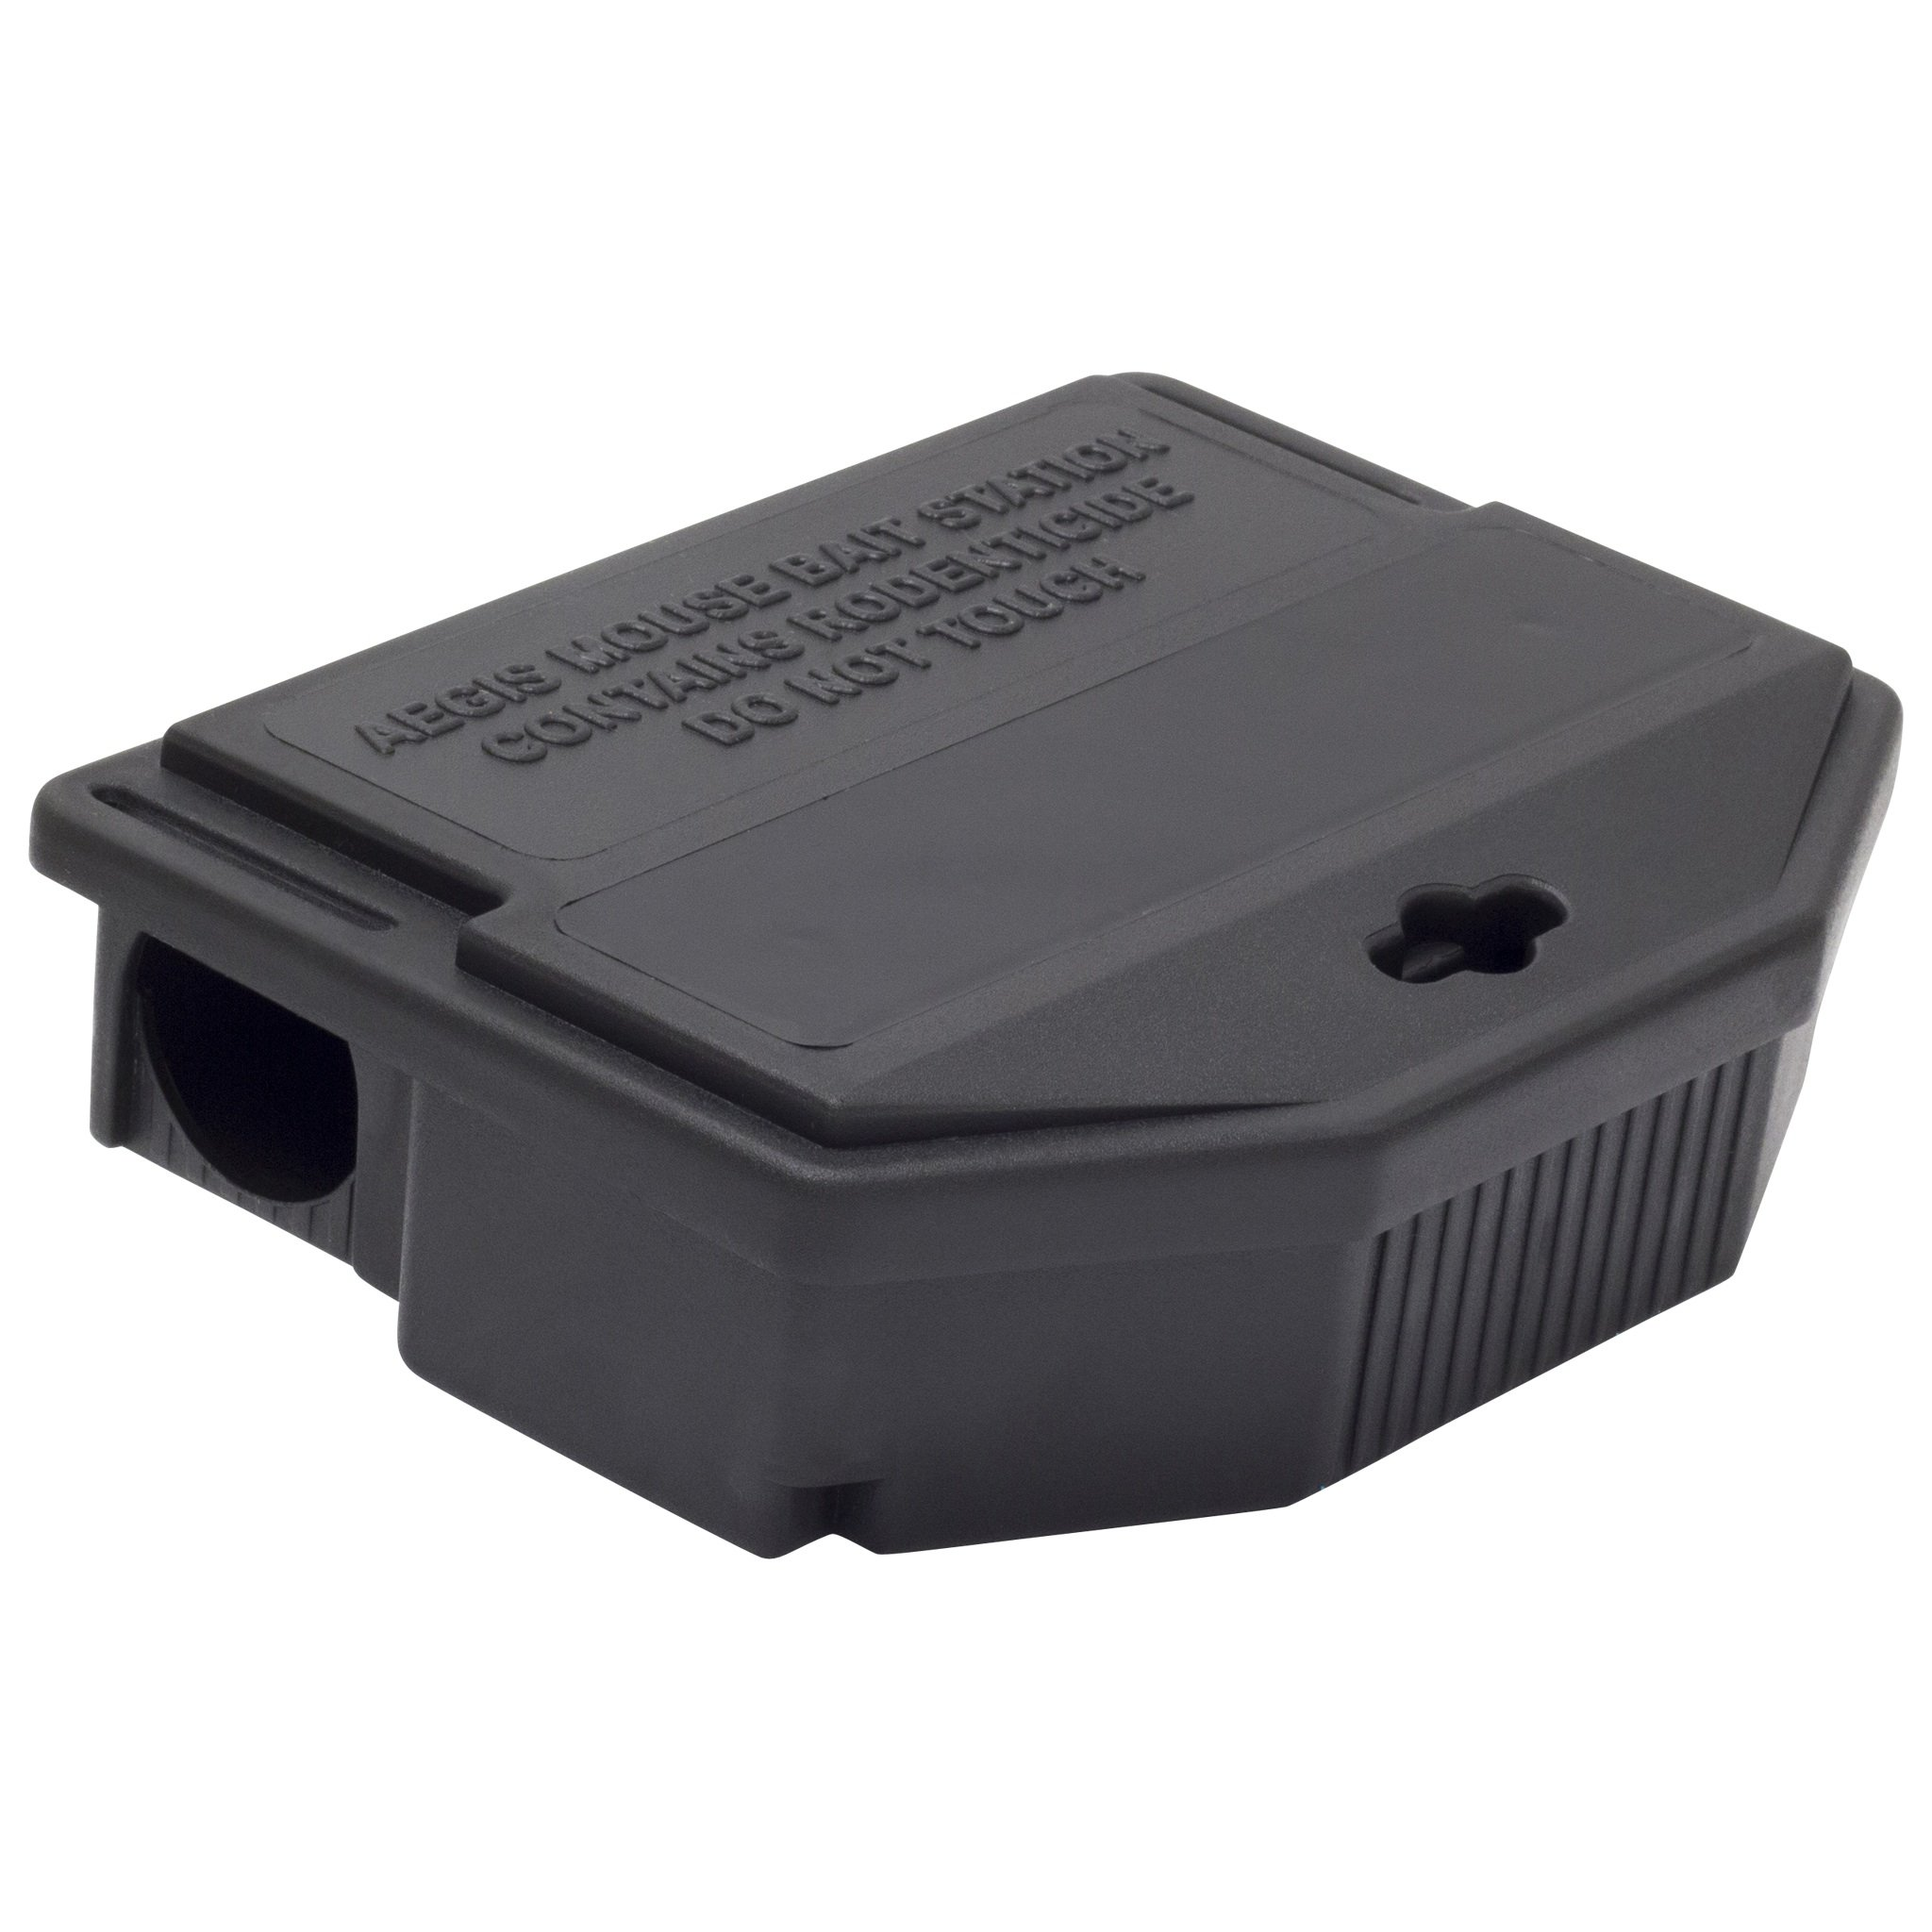 LIPHA TECH Aegis Mouse Bait Station - CASE (12 stations) by LIPHA TECH